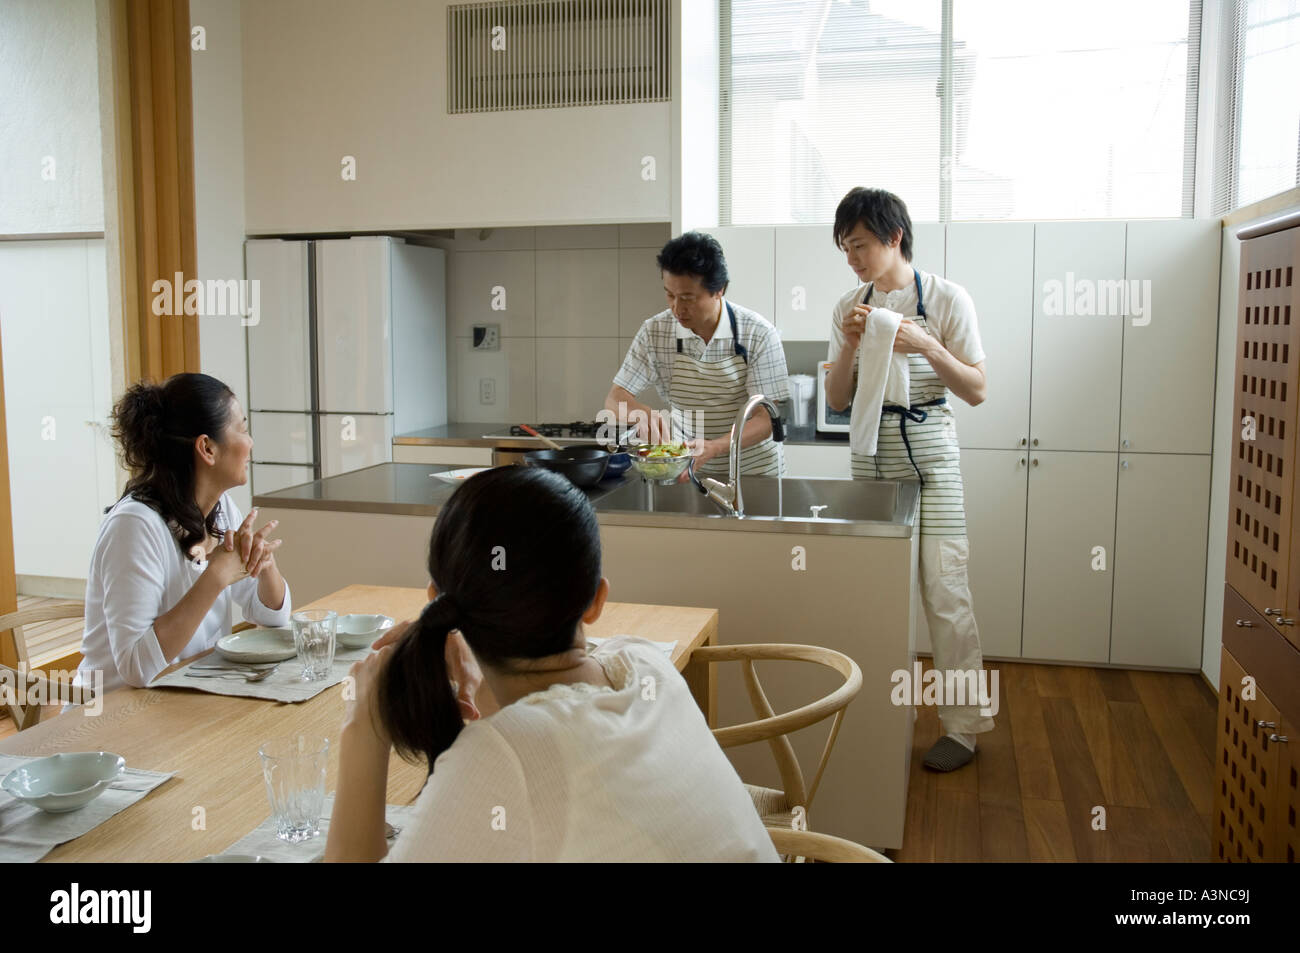 Father and son cooking in kitchen while mother and daughter waiting Stock Photo